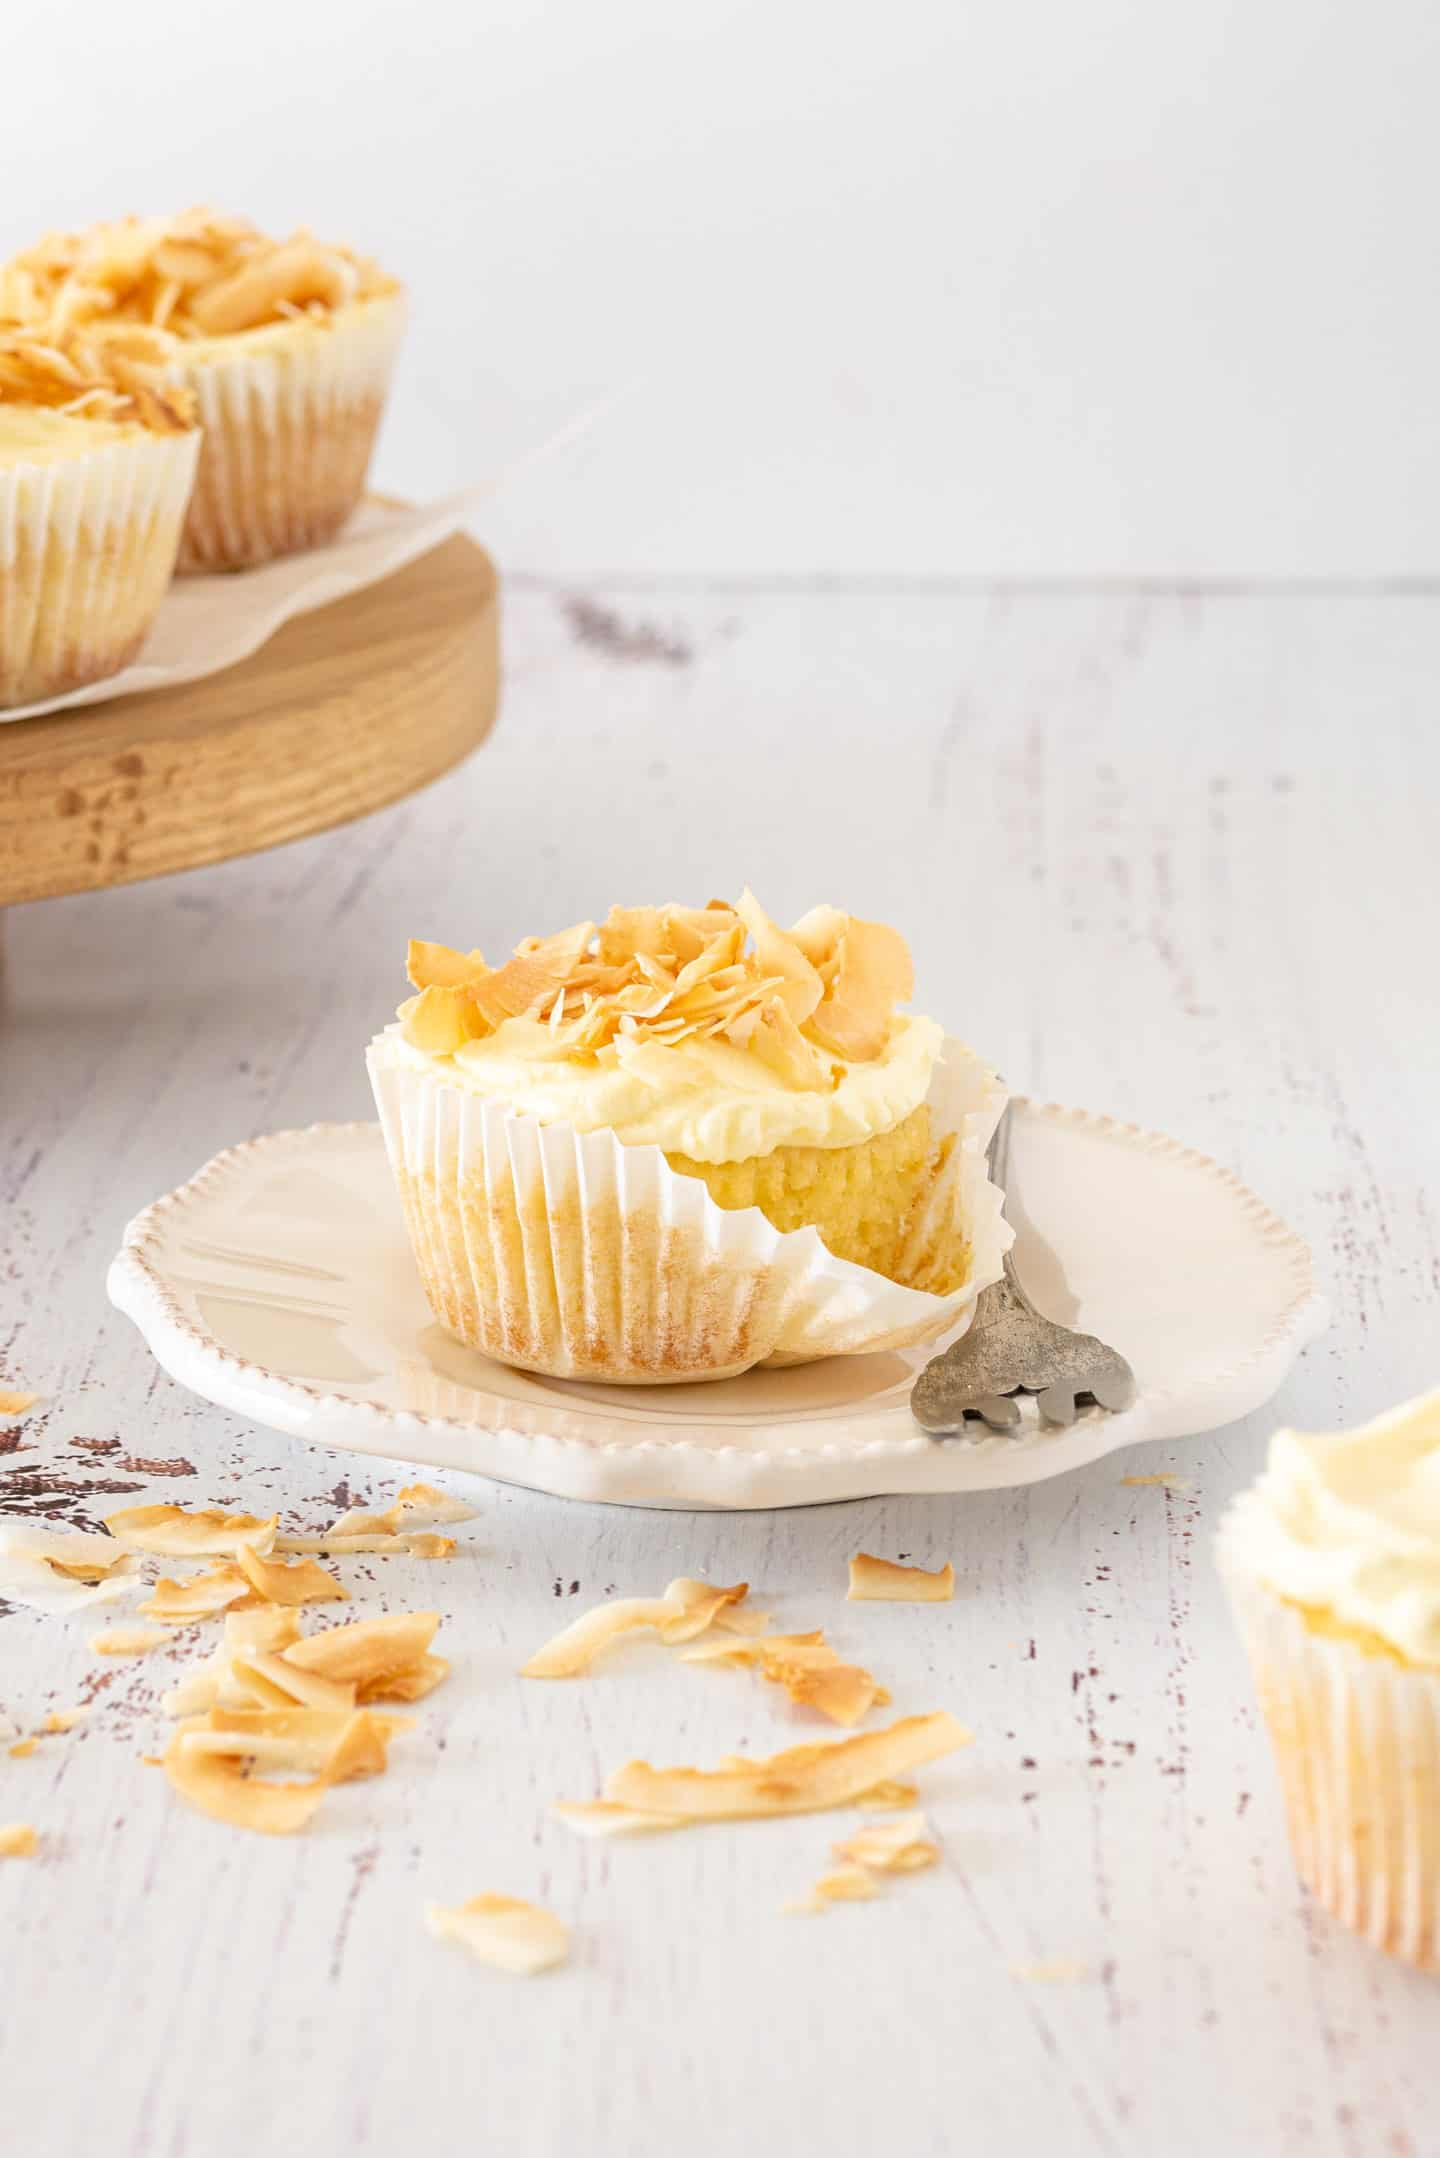 Coconut Tres Leches Cupcakes with a fork and a wooden stand at the background.